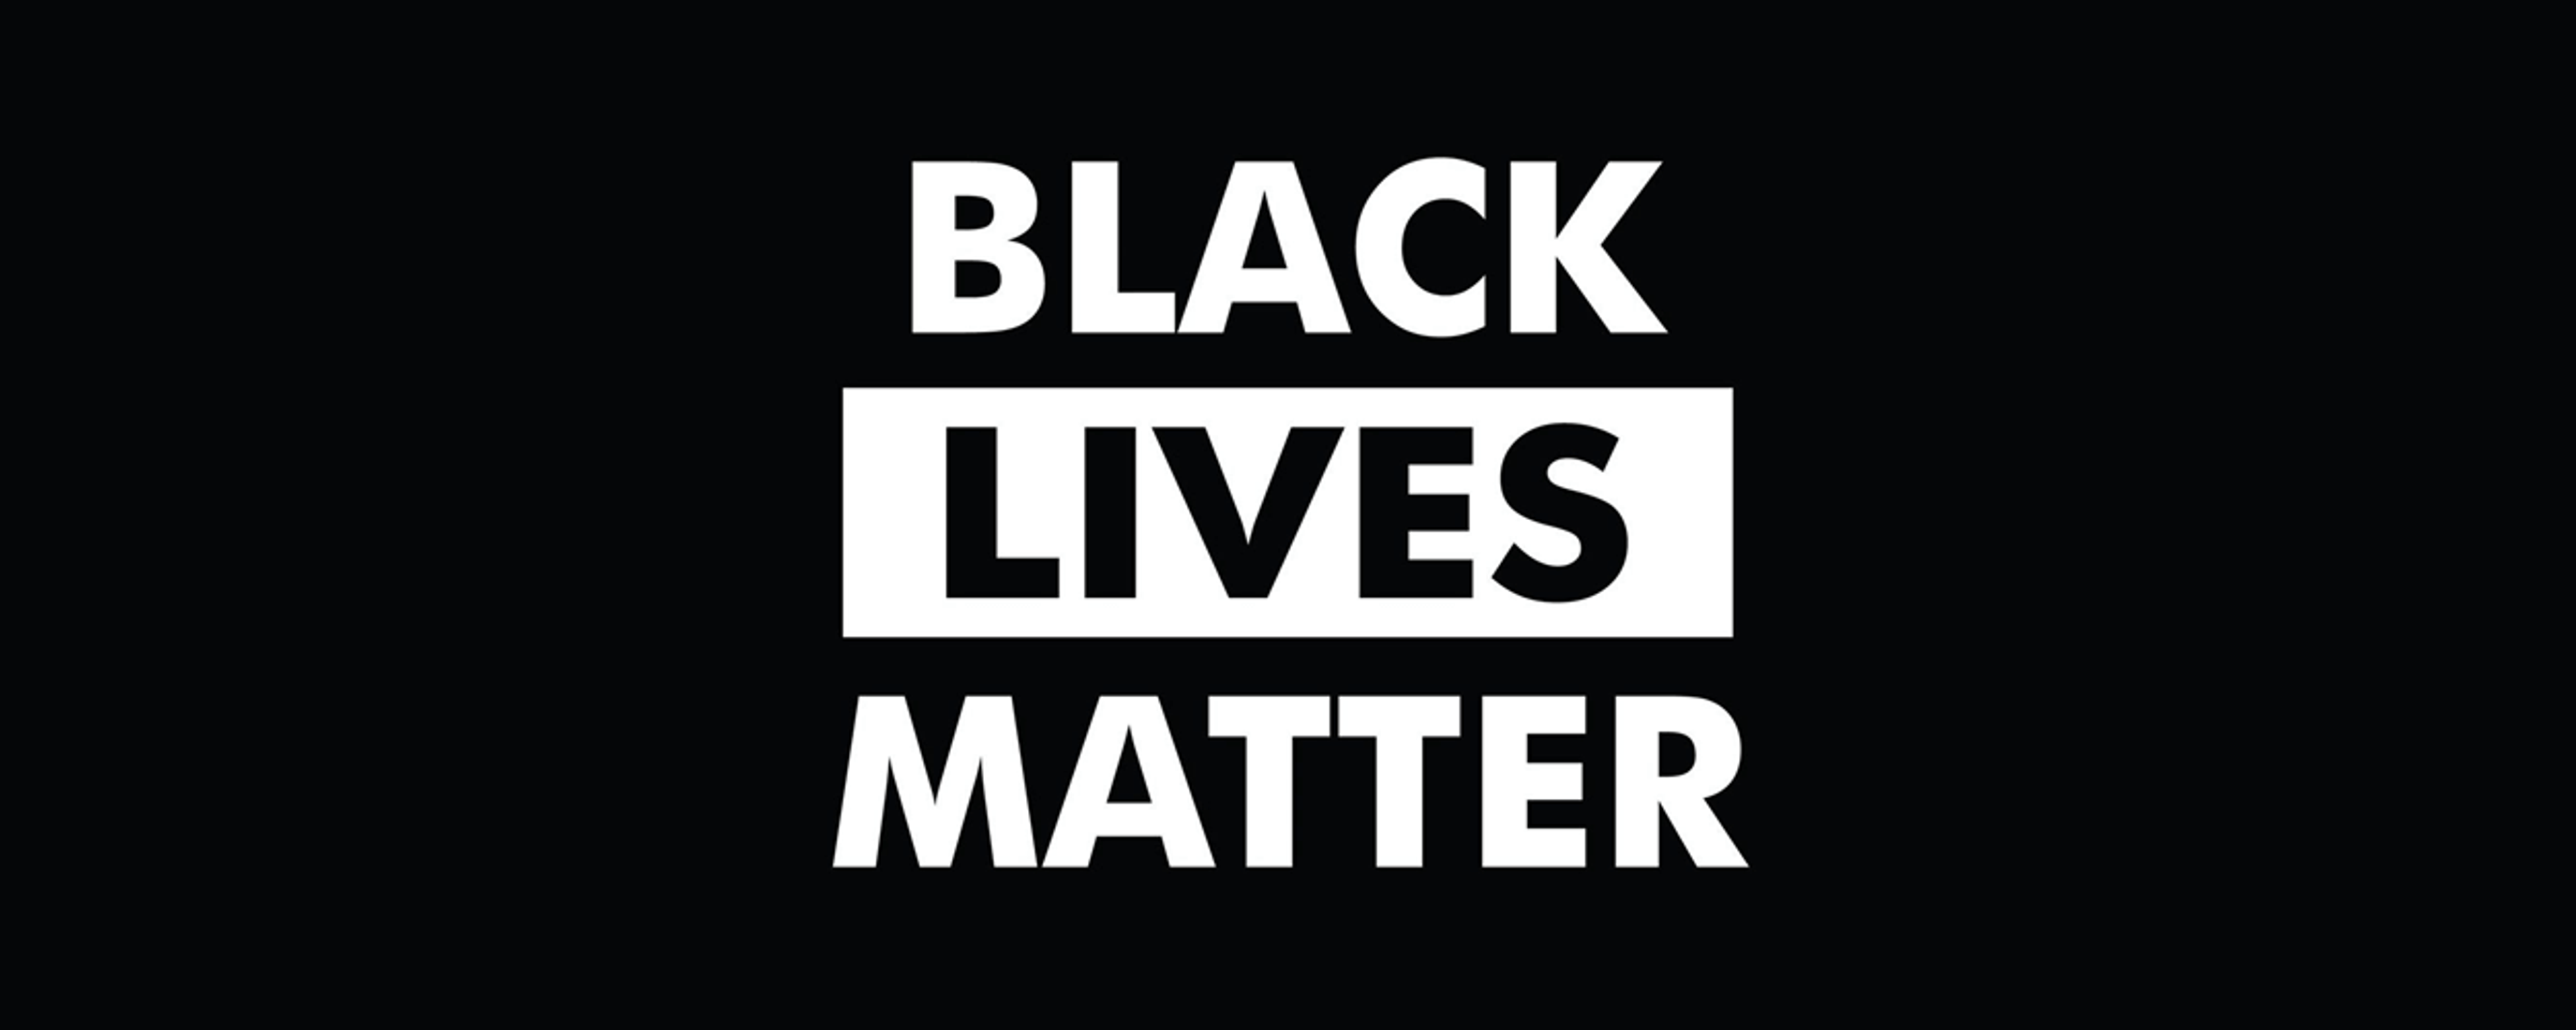 The words Black Lives Matter in all caps